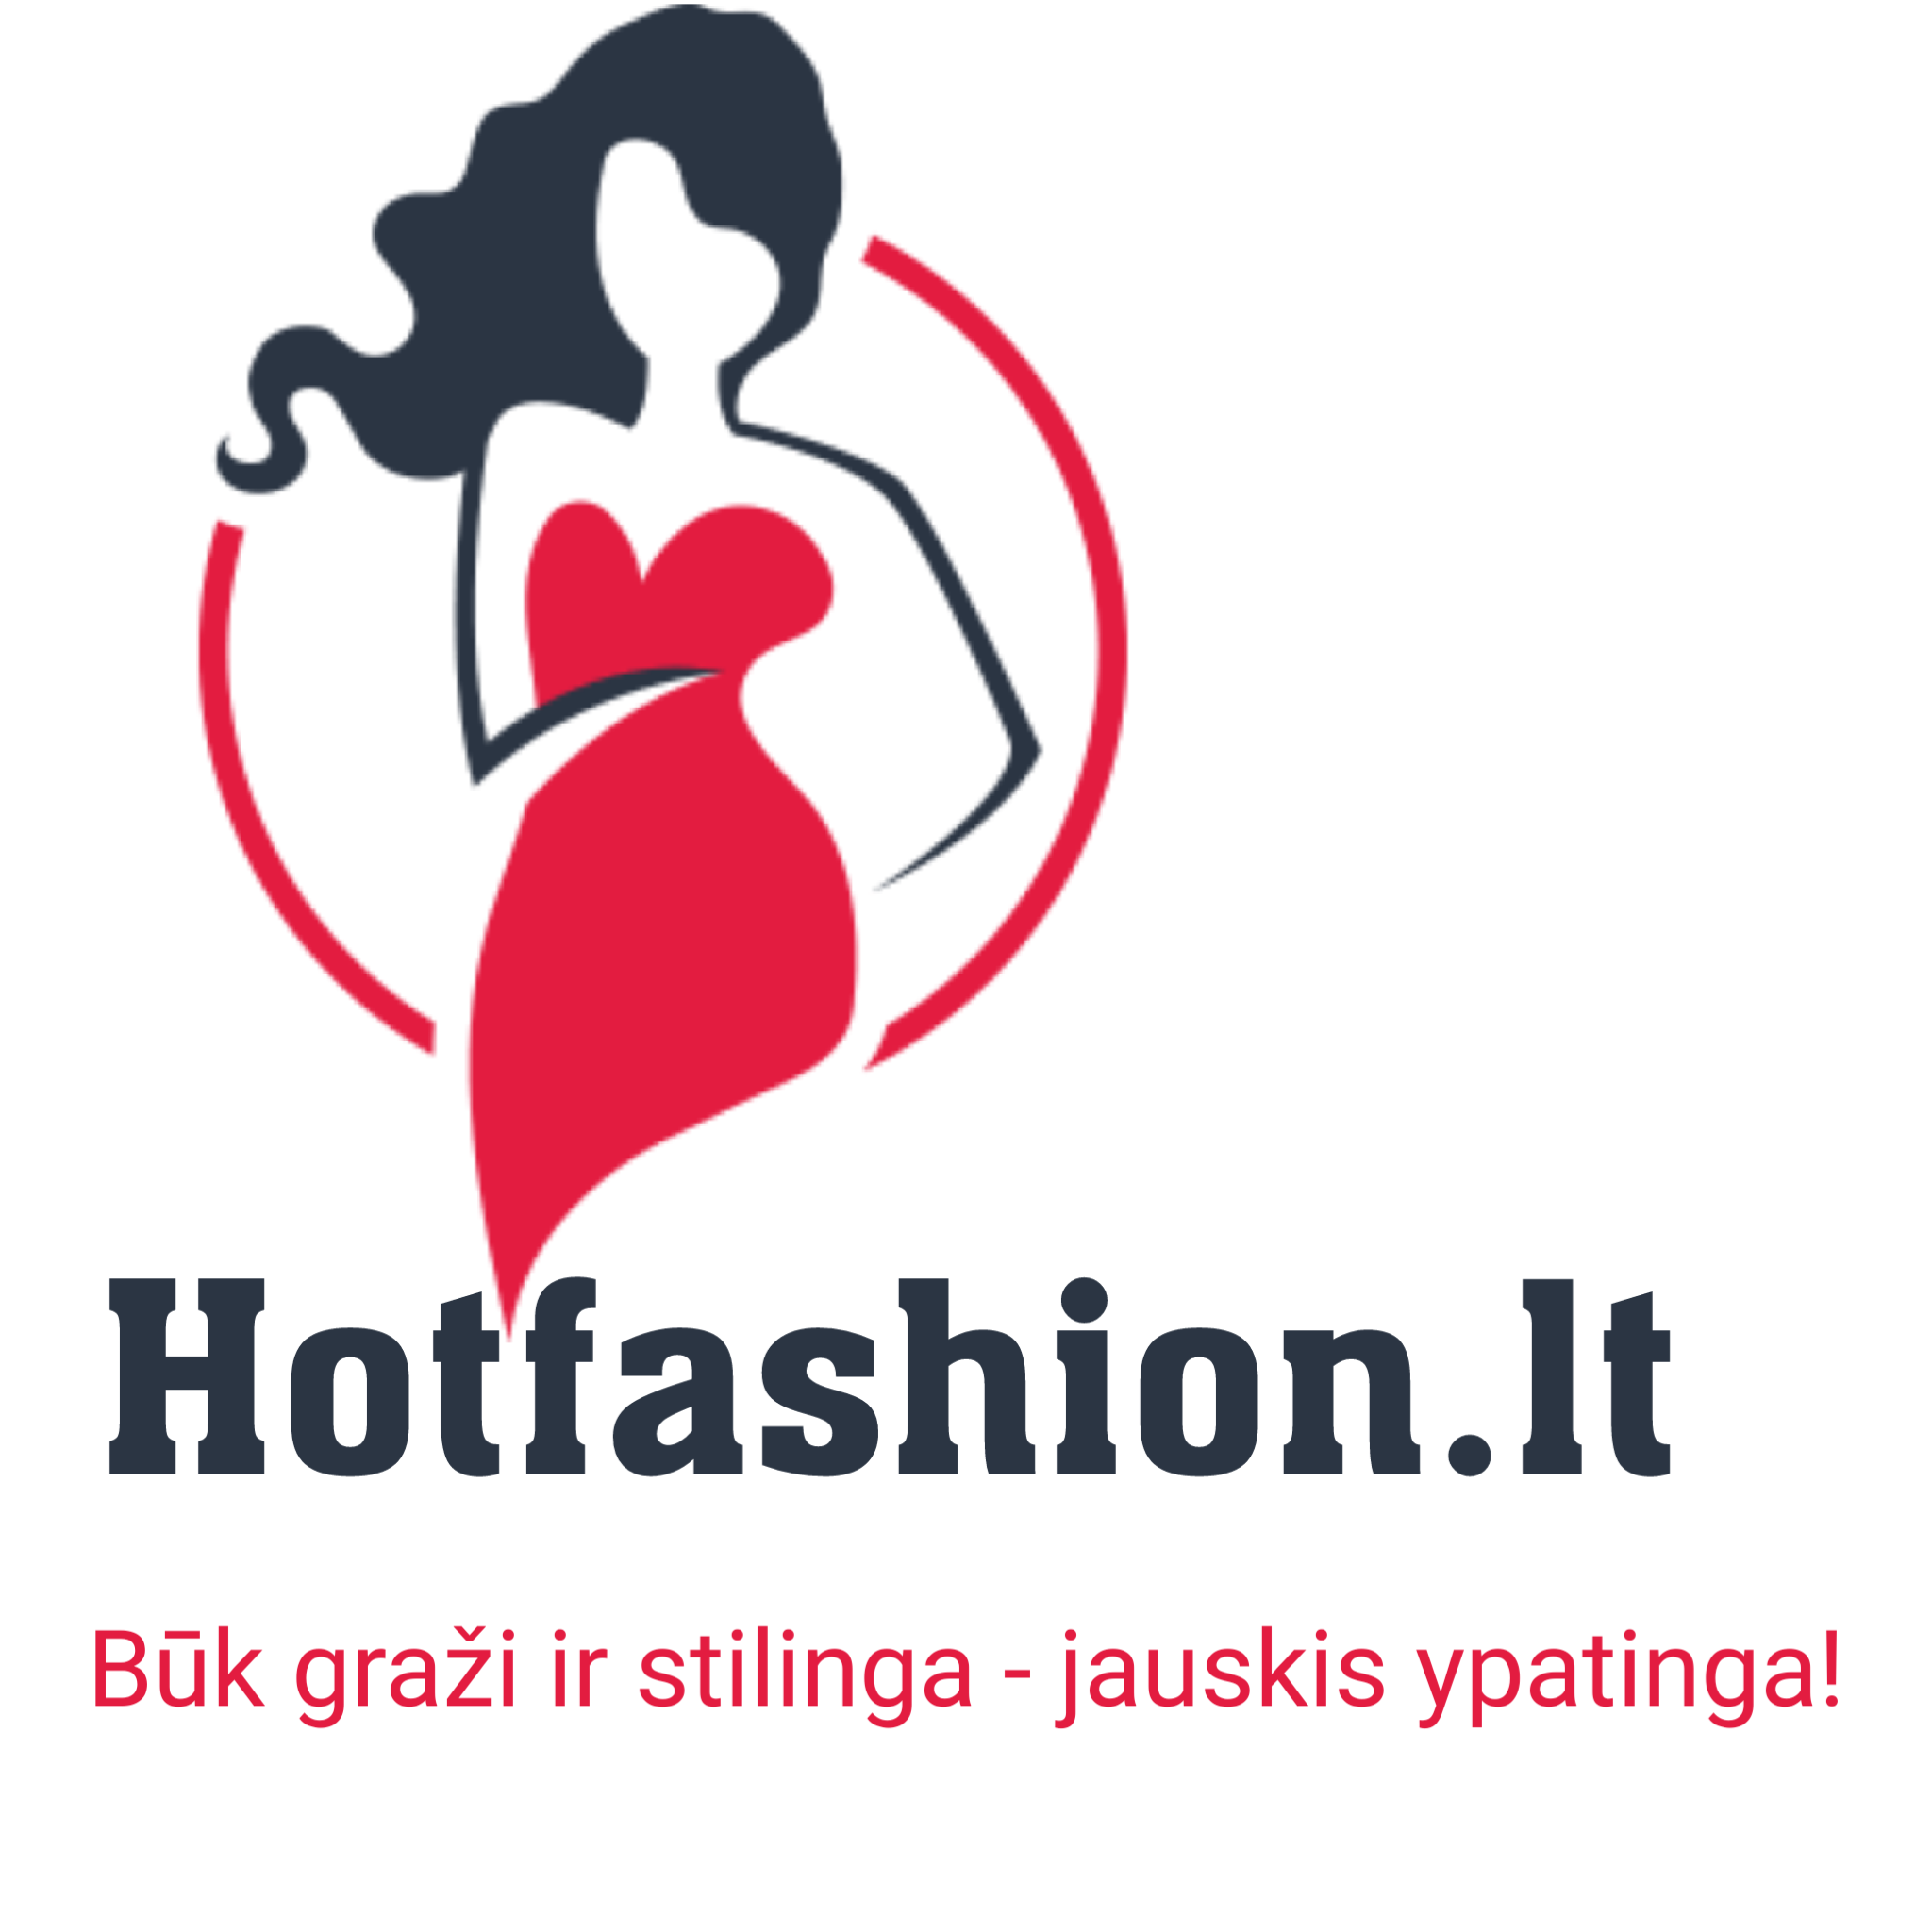 hotfashion.lt